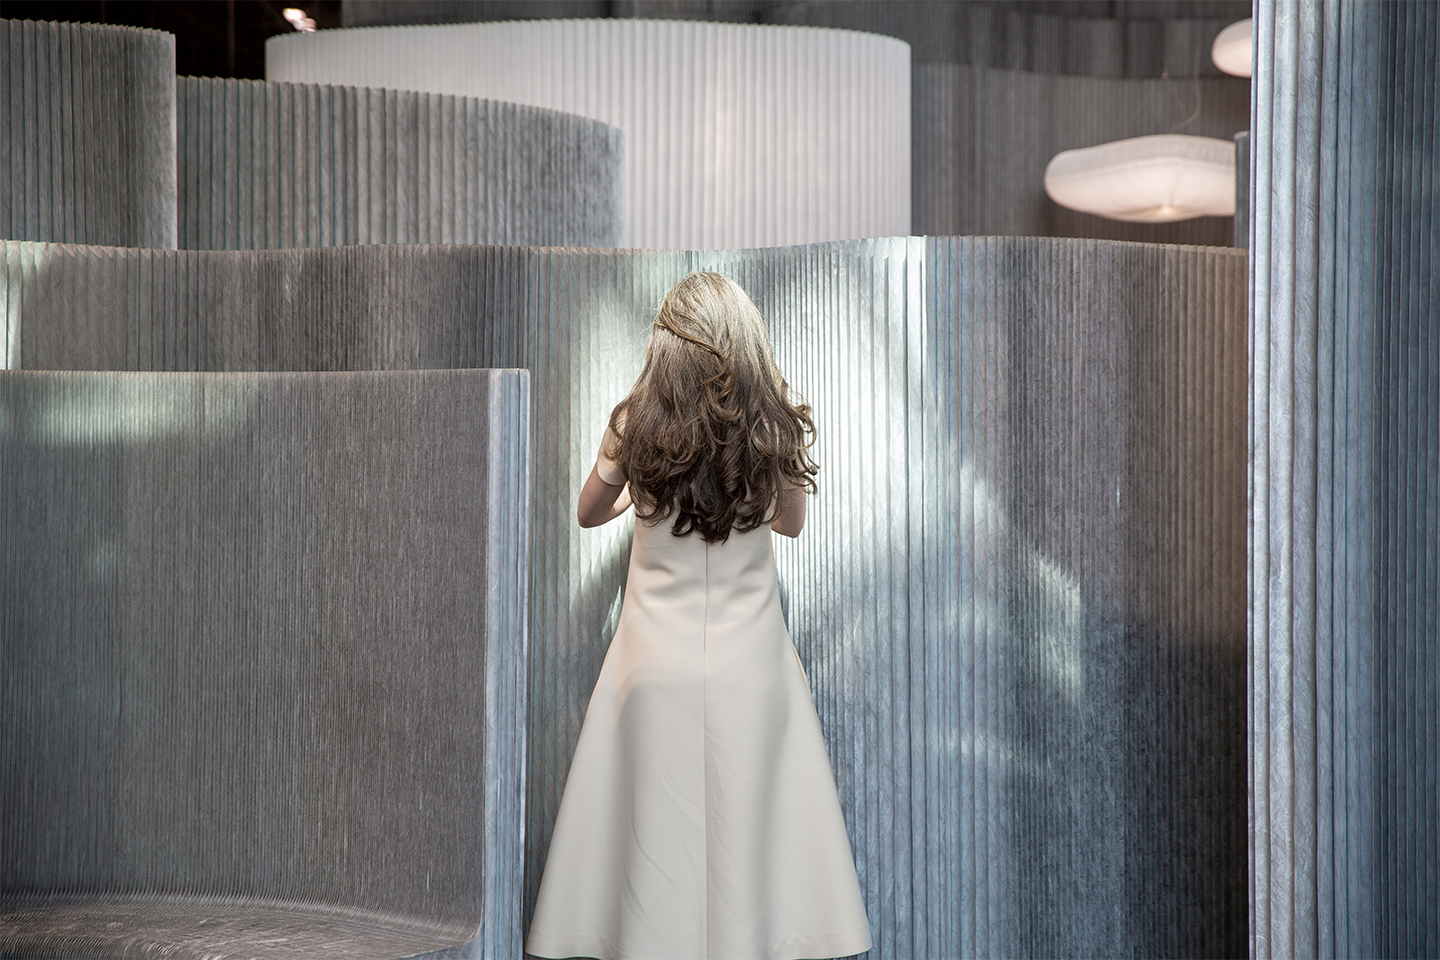 aluminum partition walls and high backed bench | molo display at ICFF 2019 NYC